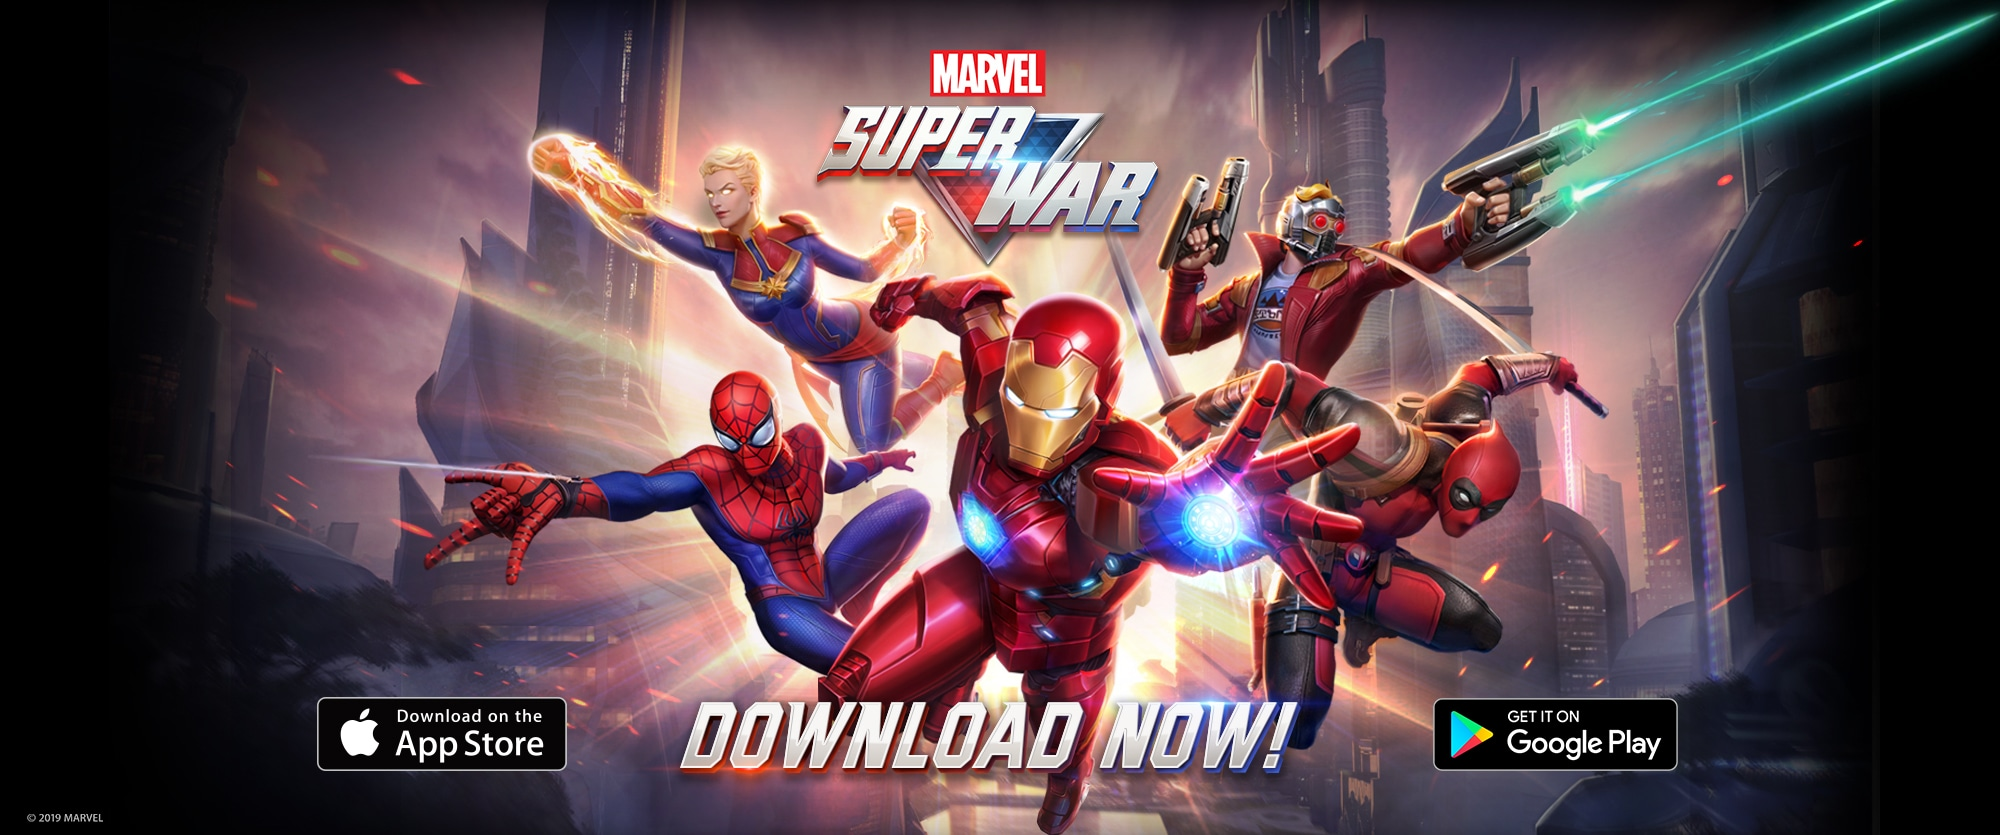 Marvel Super War Game